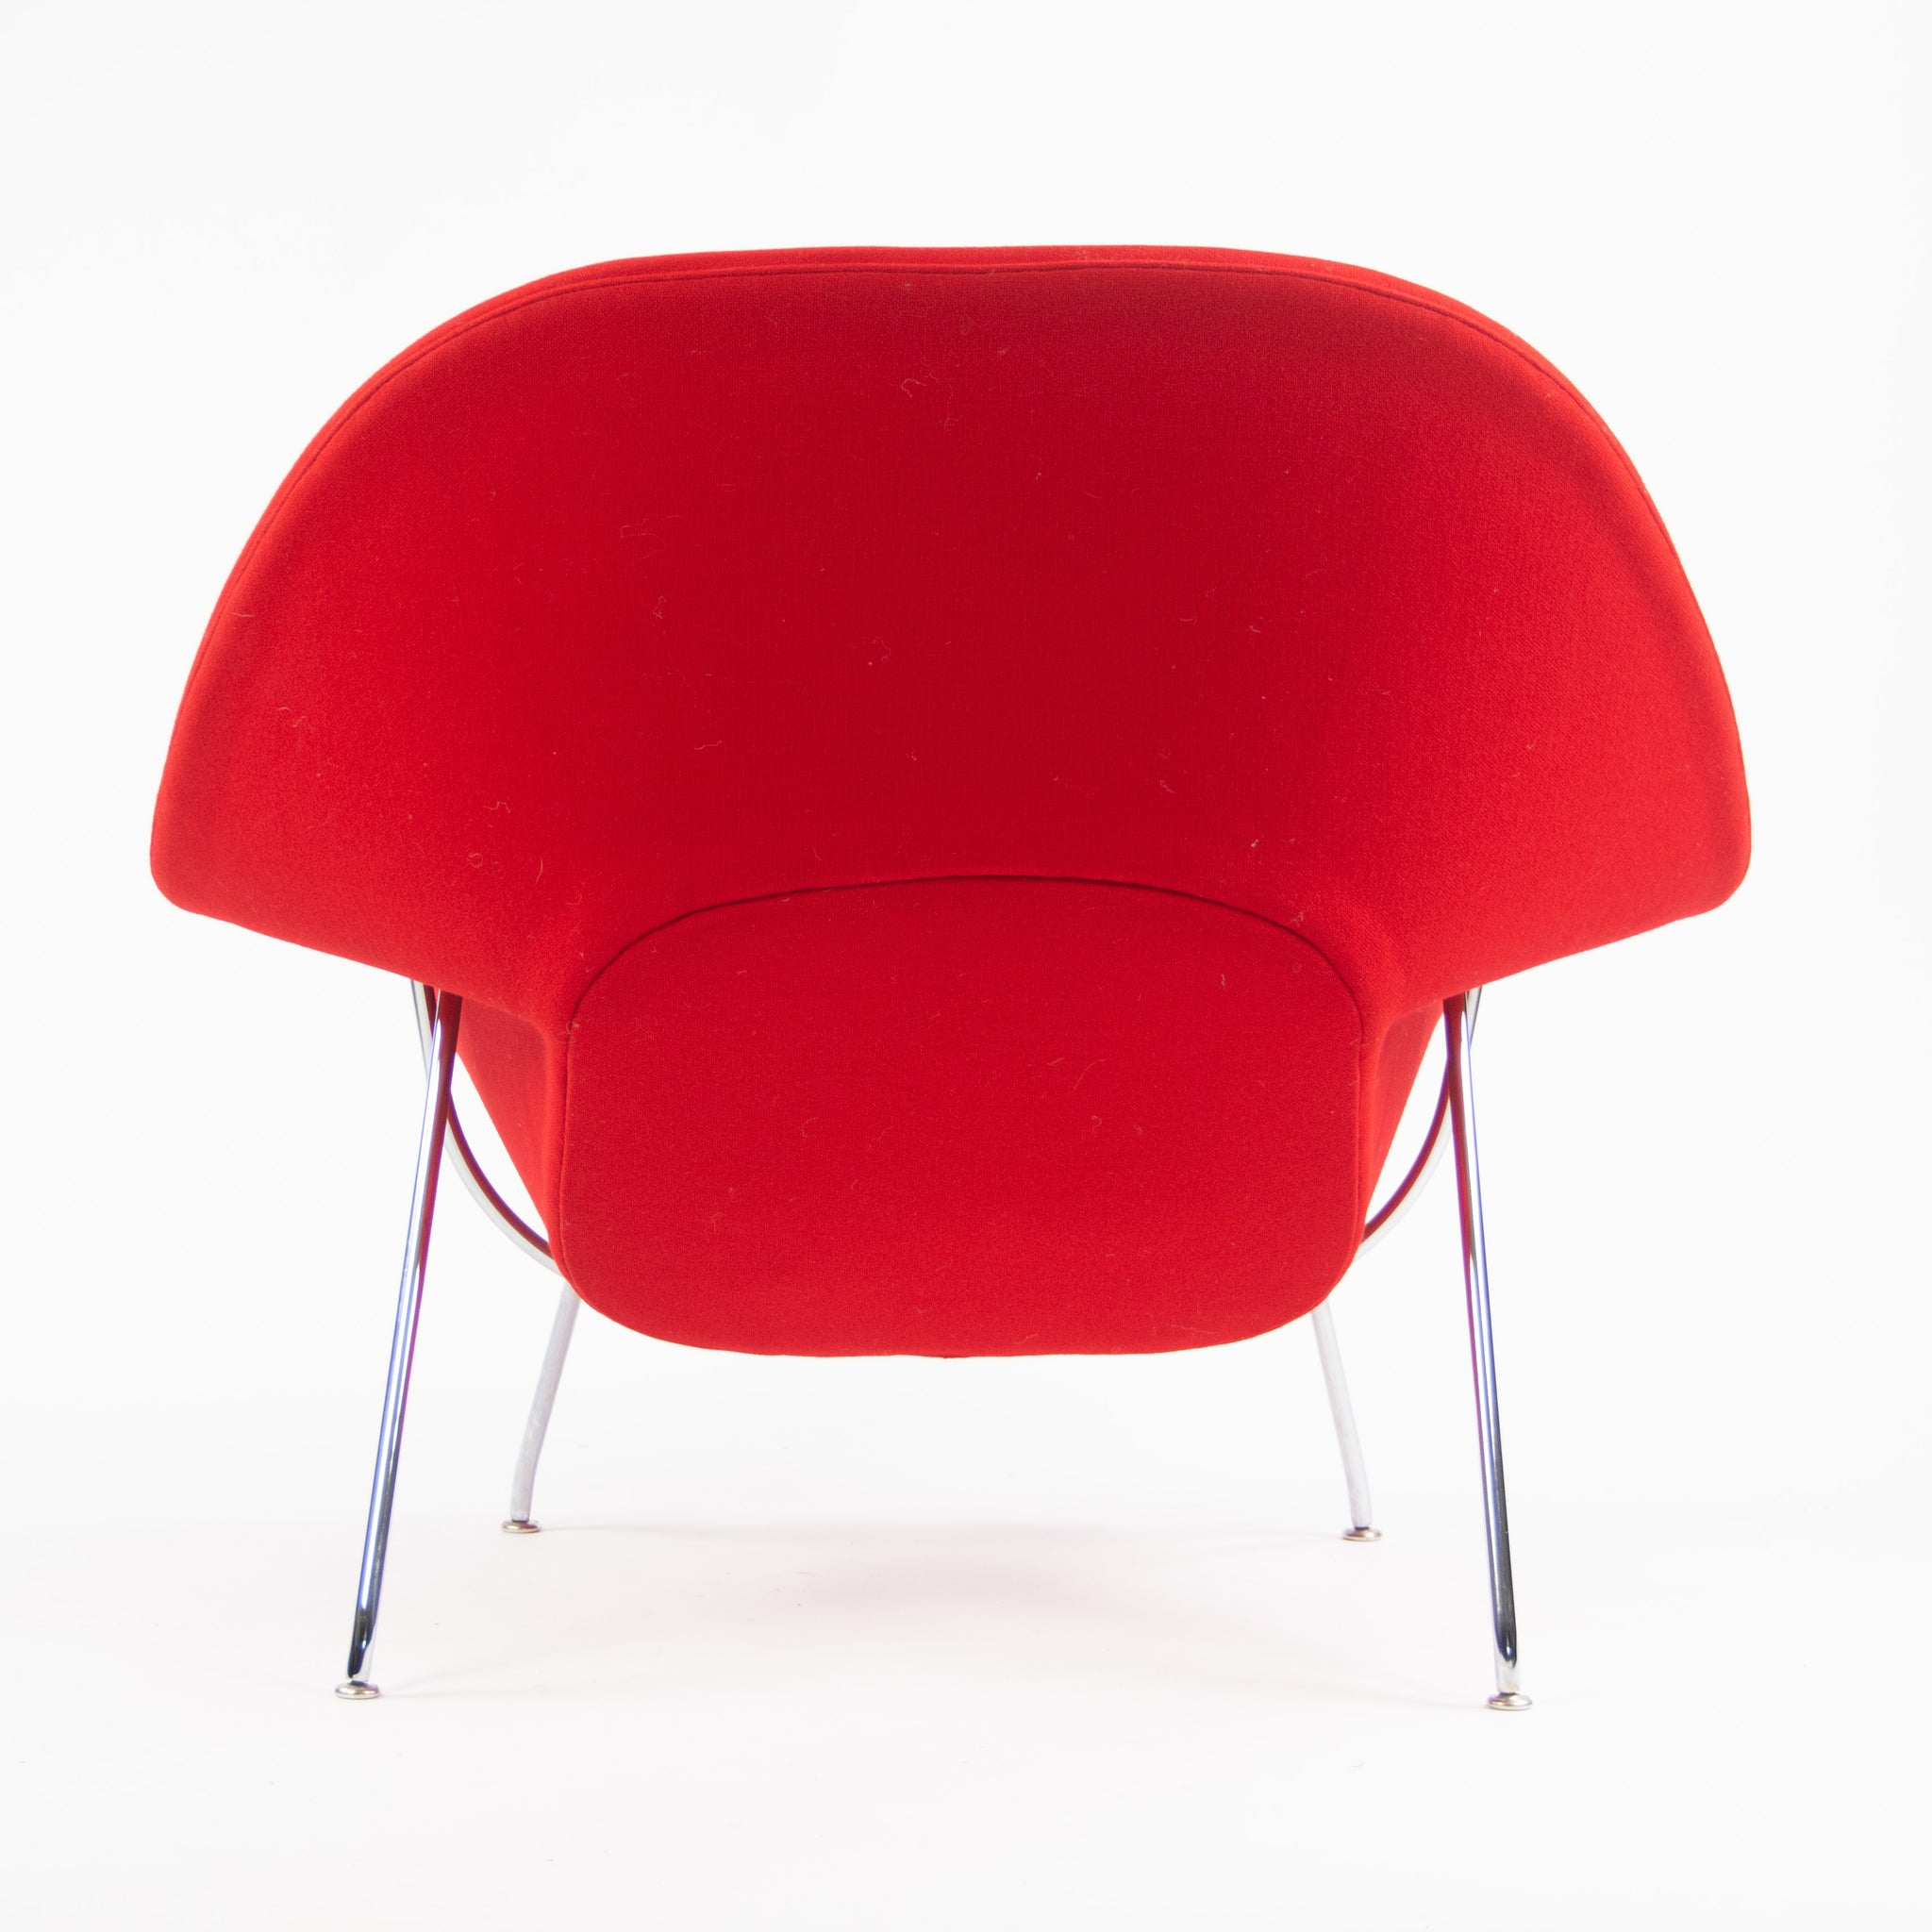 SOLD 2000's Eero Saarinen Womb Chair and Ottoman Knoll Studio Full-Size Red Hopsack